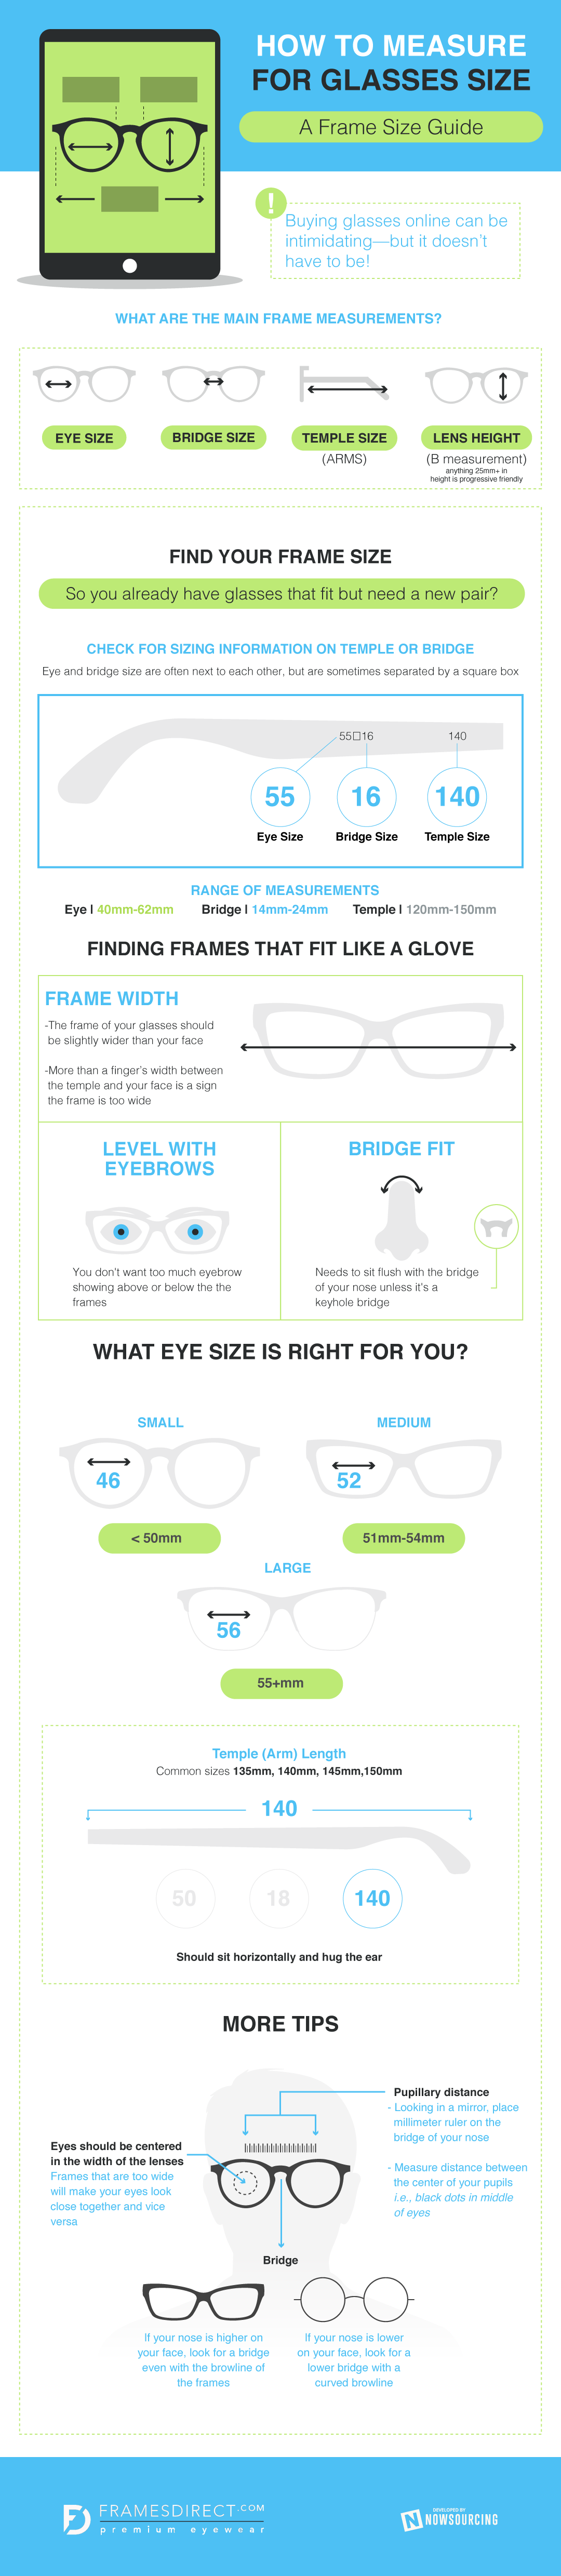 Glasses Frame Measurements : Glasses Size How to Measure for Eyeglasses Frame Size